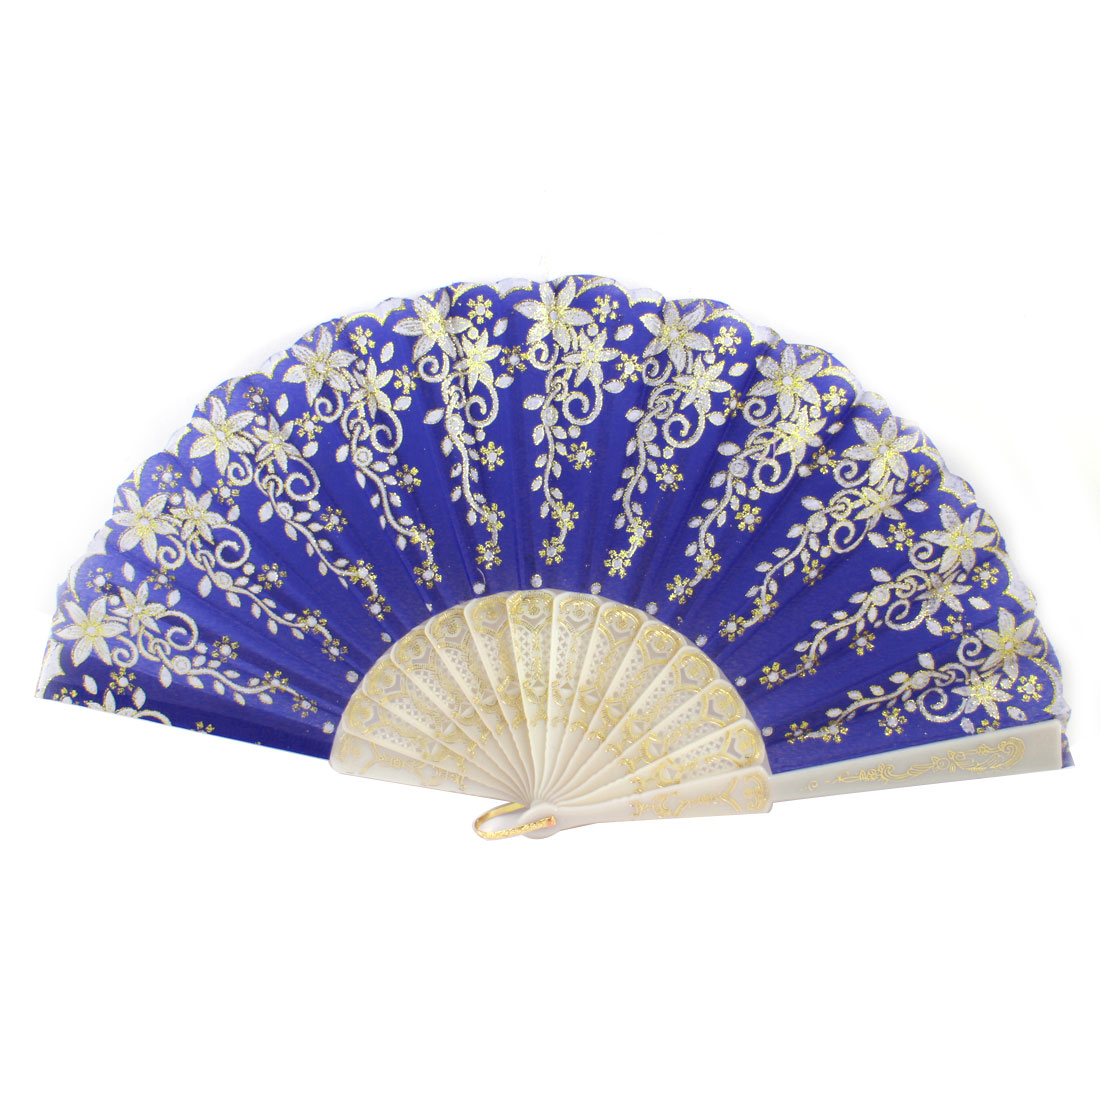 Plastic Rib Gold Tone Glittery Powder Detail Flower Pattern Foldable Hand Fan Blue White